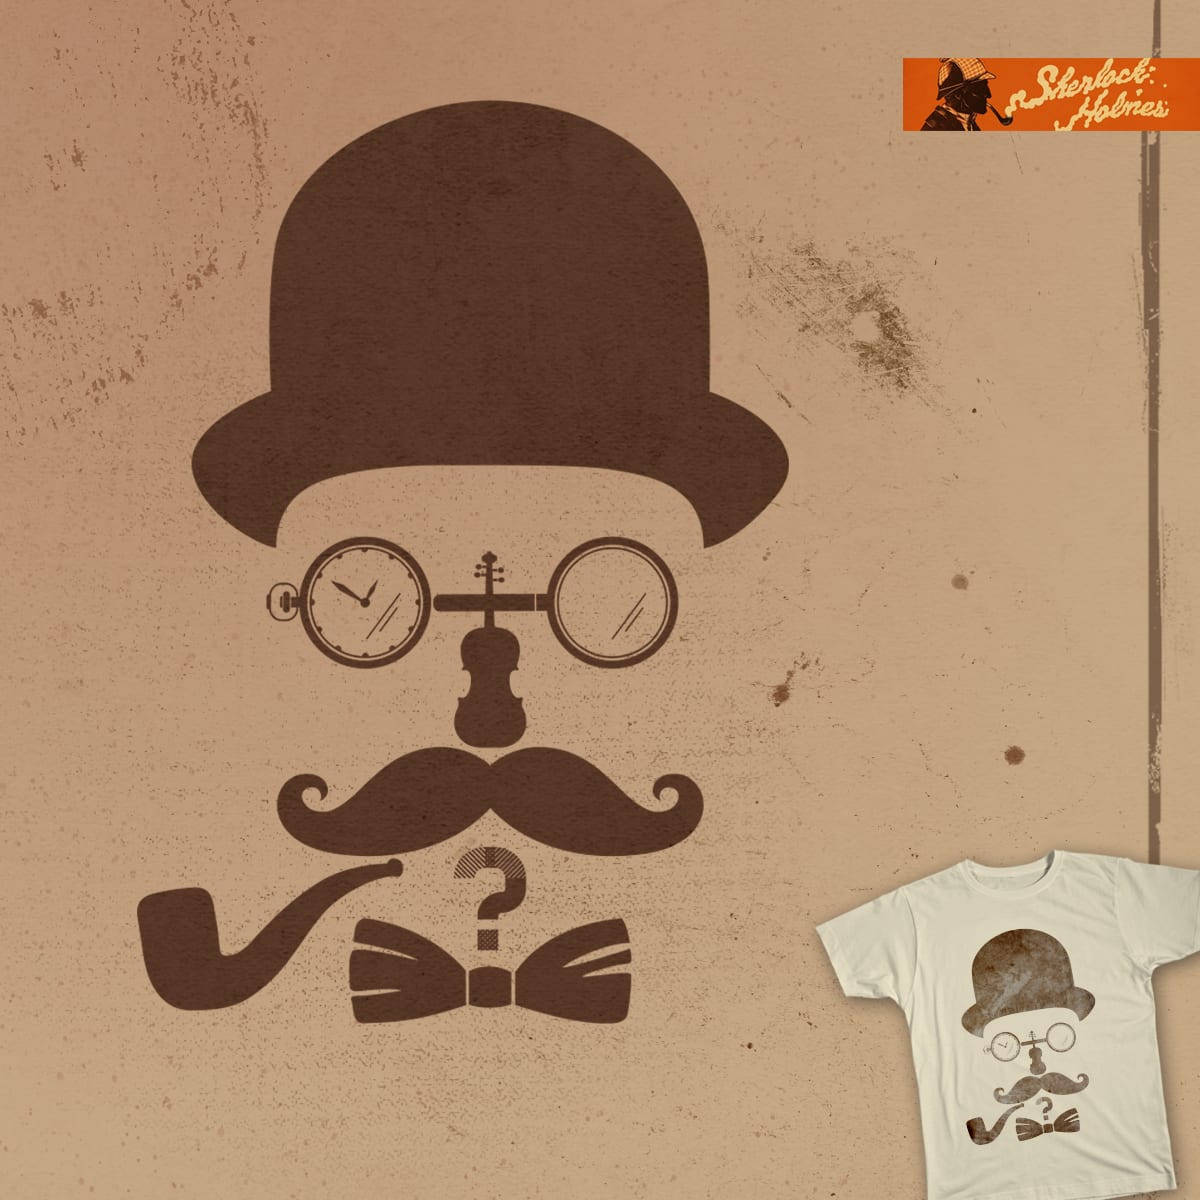 Who am i? by yogeshbgavhane on Threadless